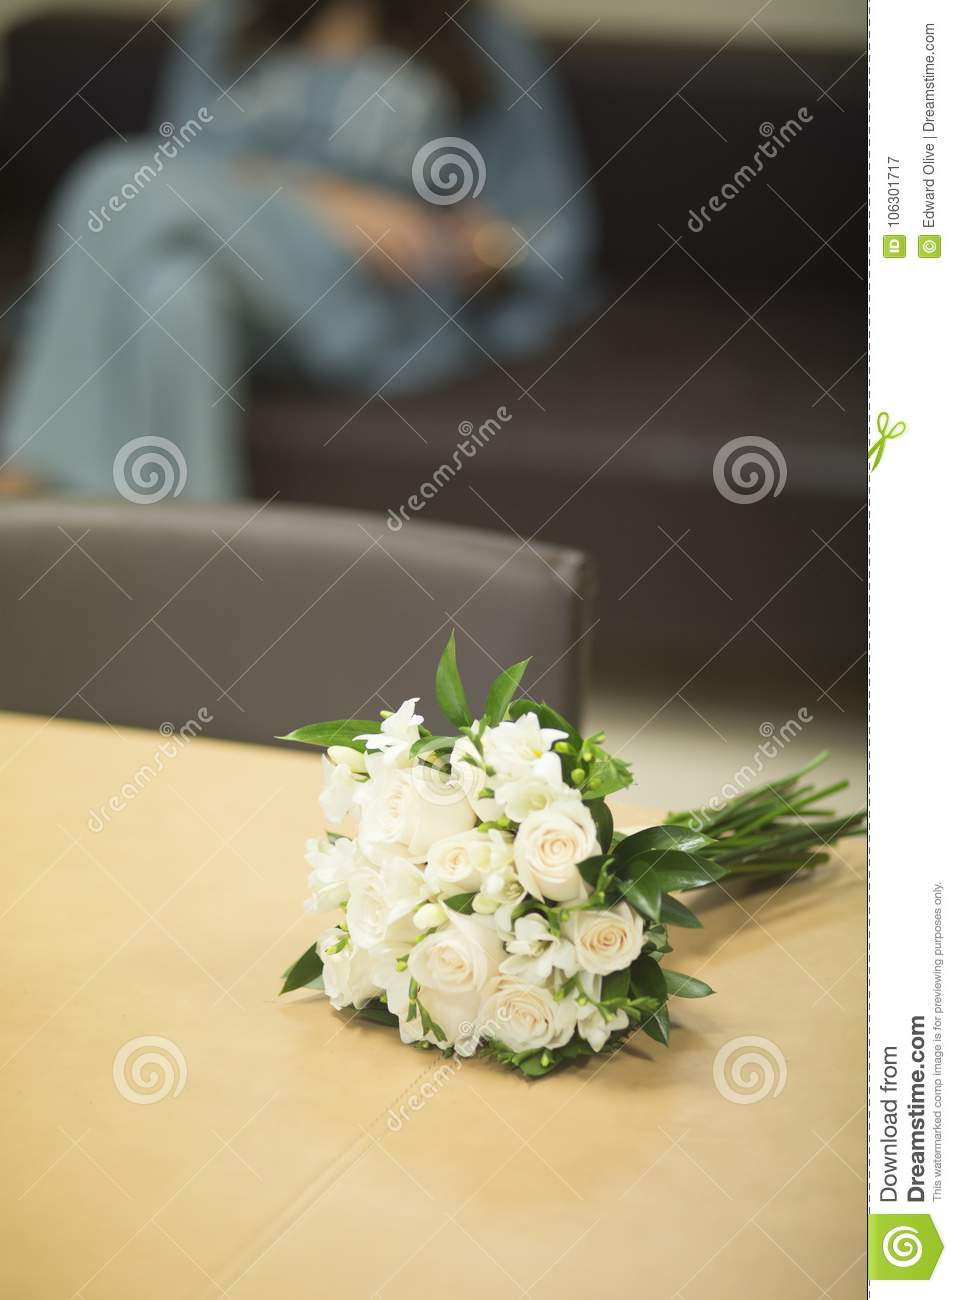 Civil wedding bridal bouquet stock image image of civil posy civil non religious wedding ceremony registry office bridal bouquet of roses flowers of the bride izmirmasajfo